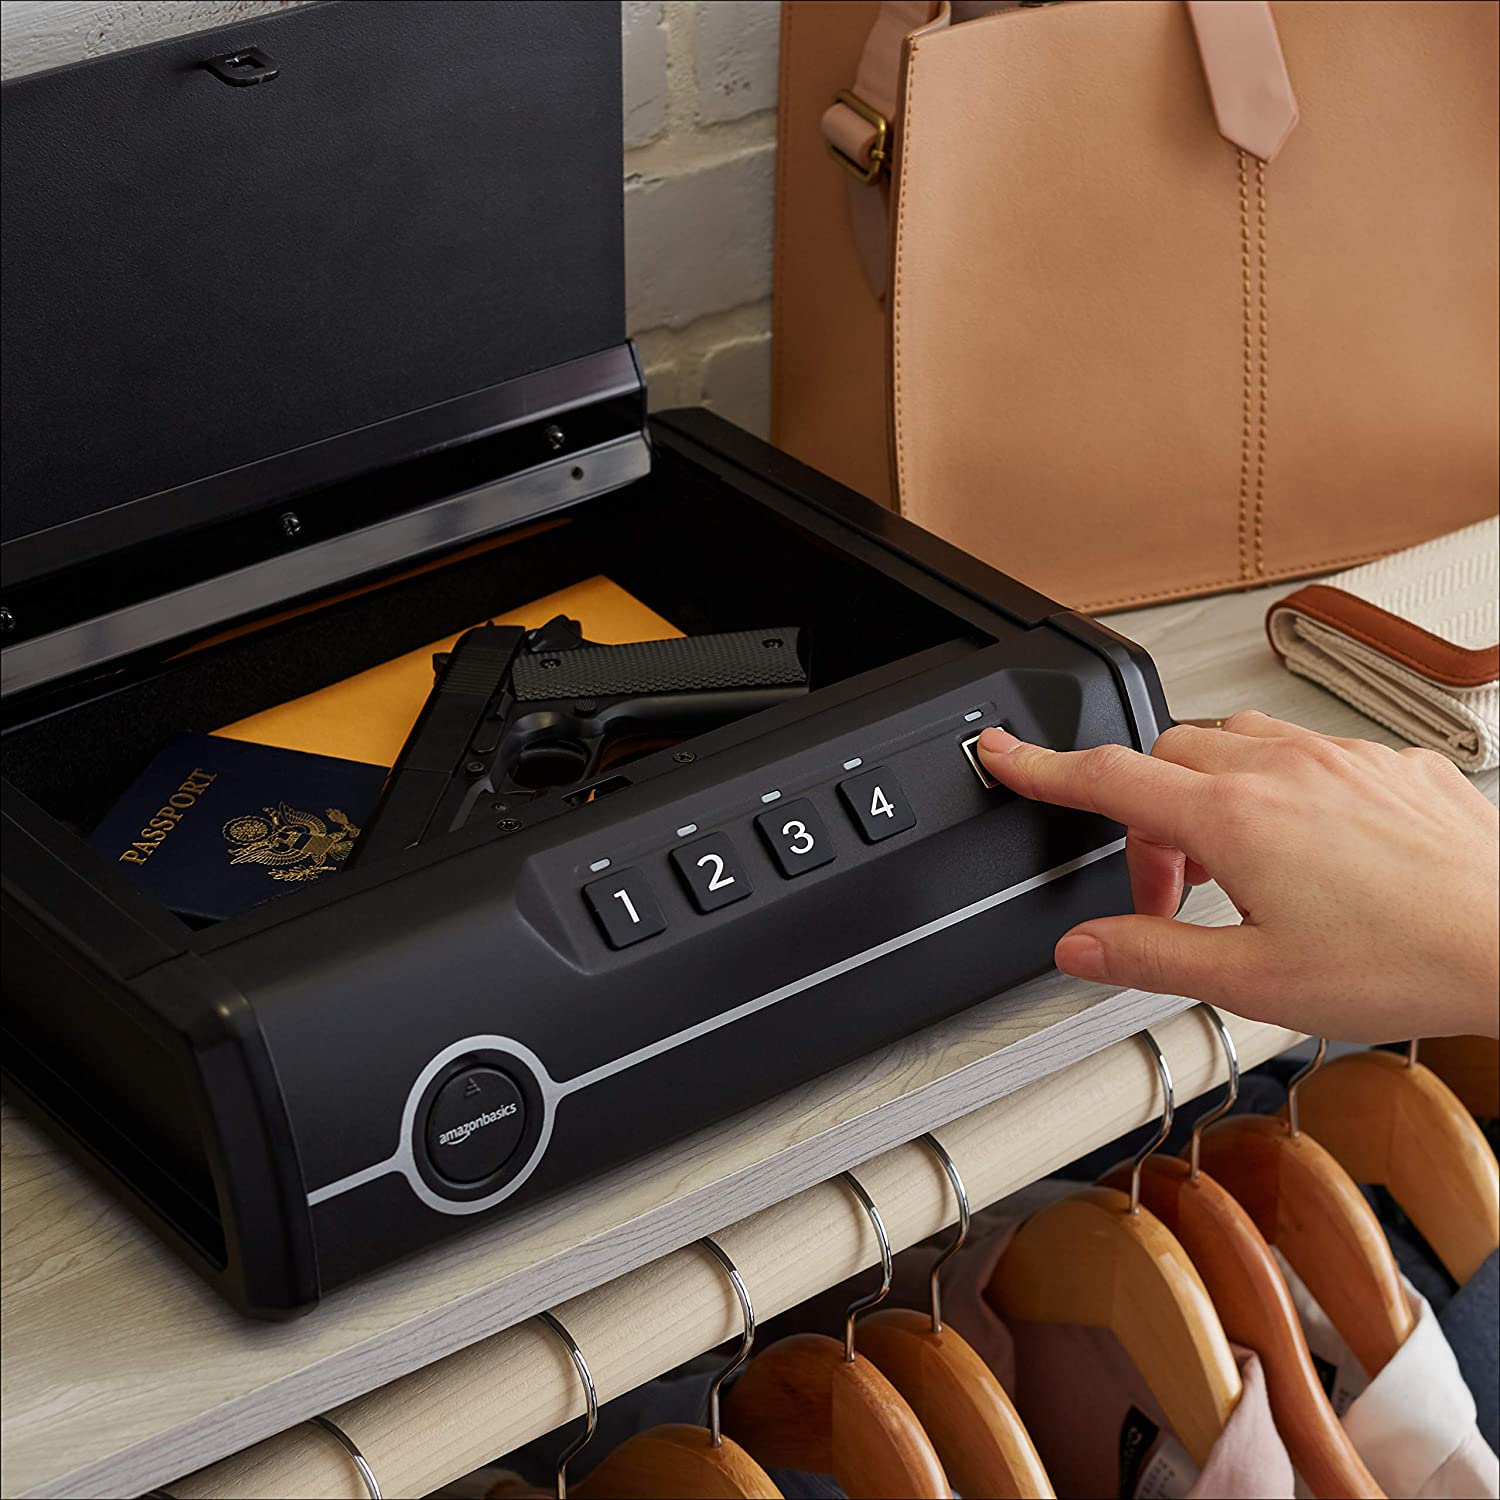 Basics Deluxe Quick-Access Firearm Safety Device with Biometric Fingerprint Lock